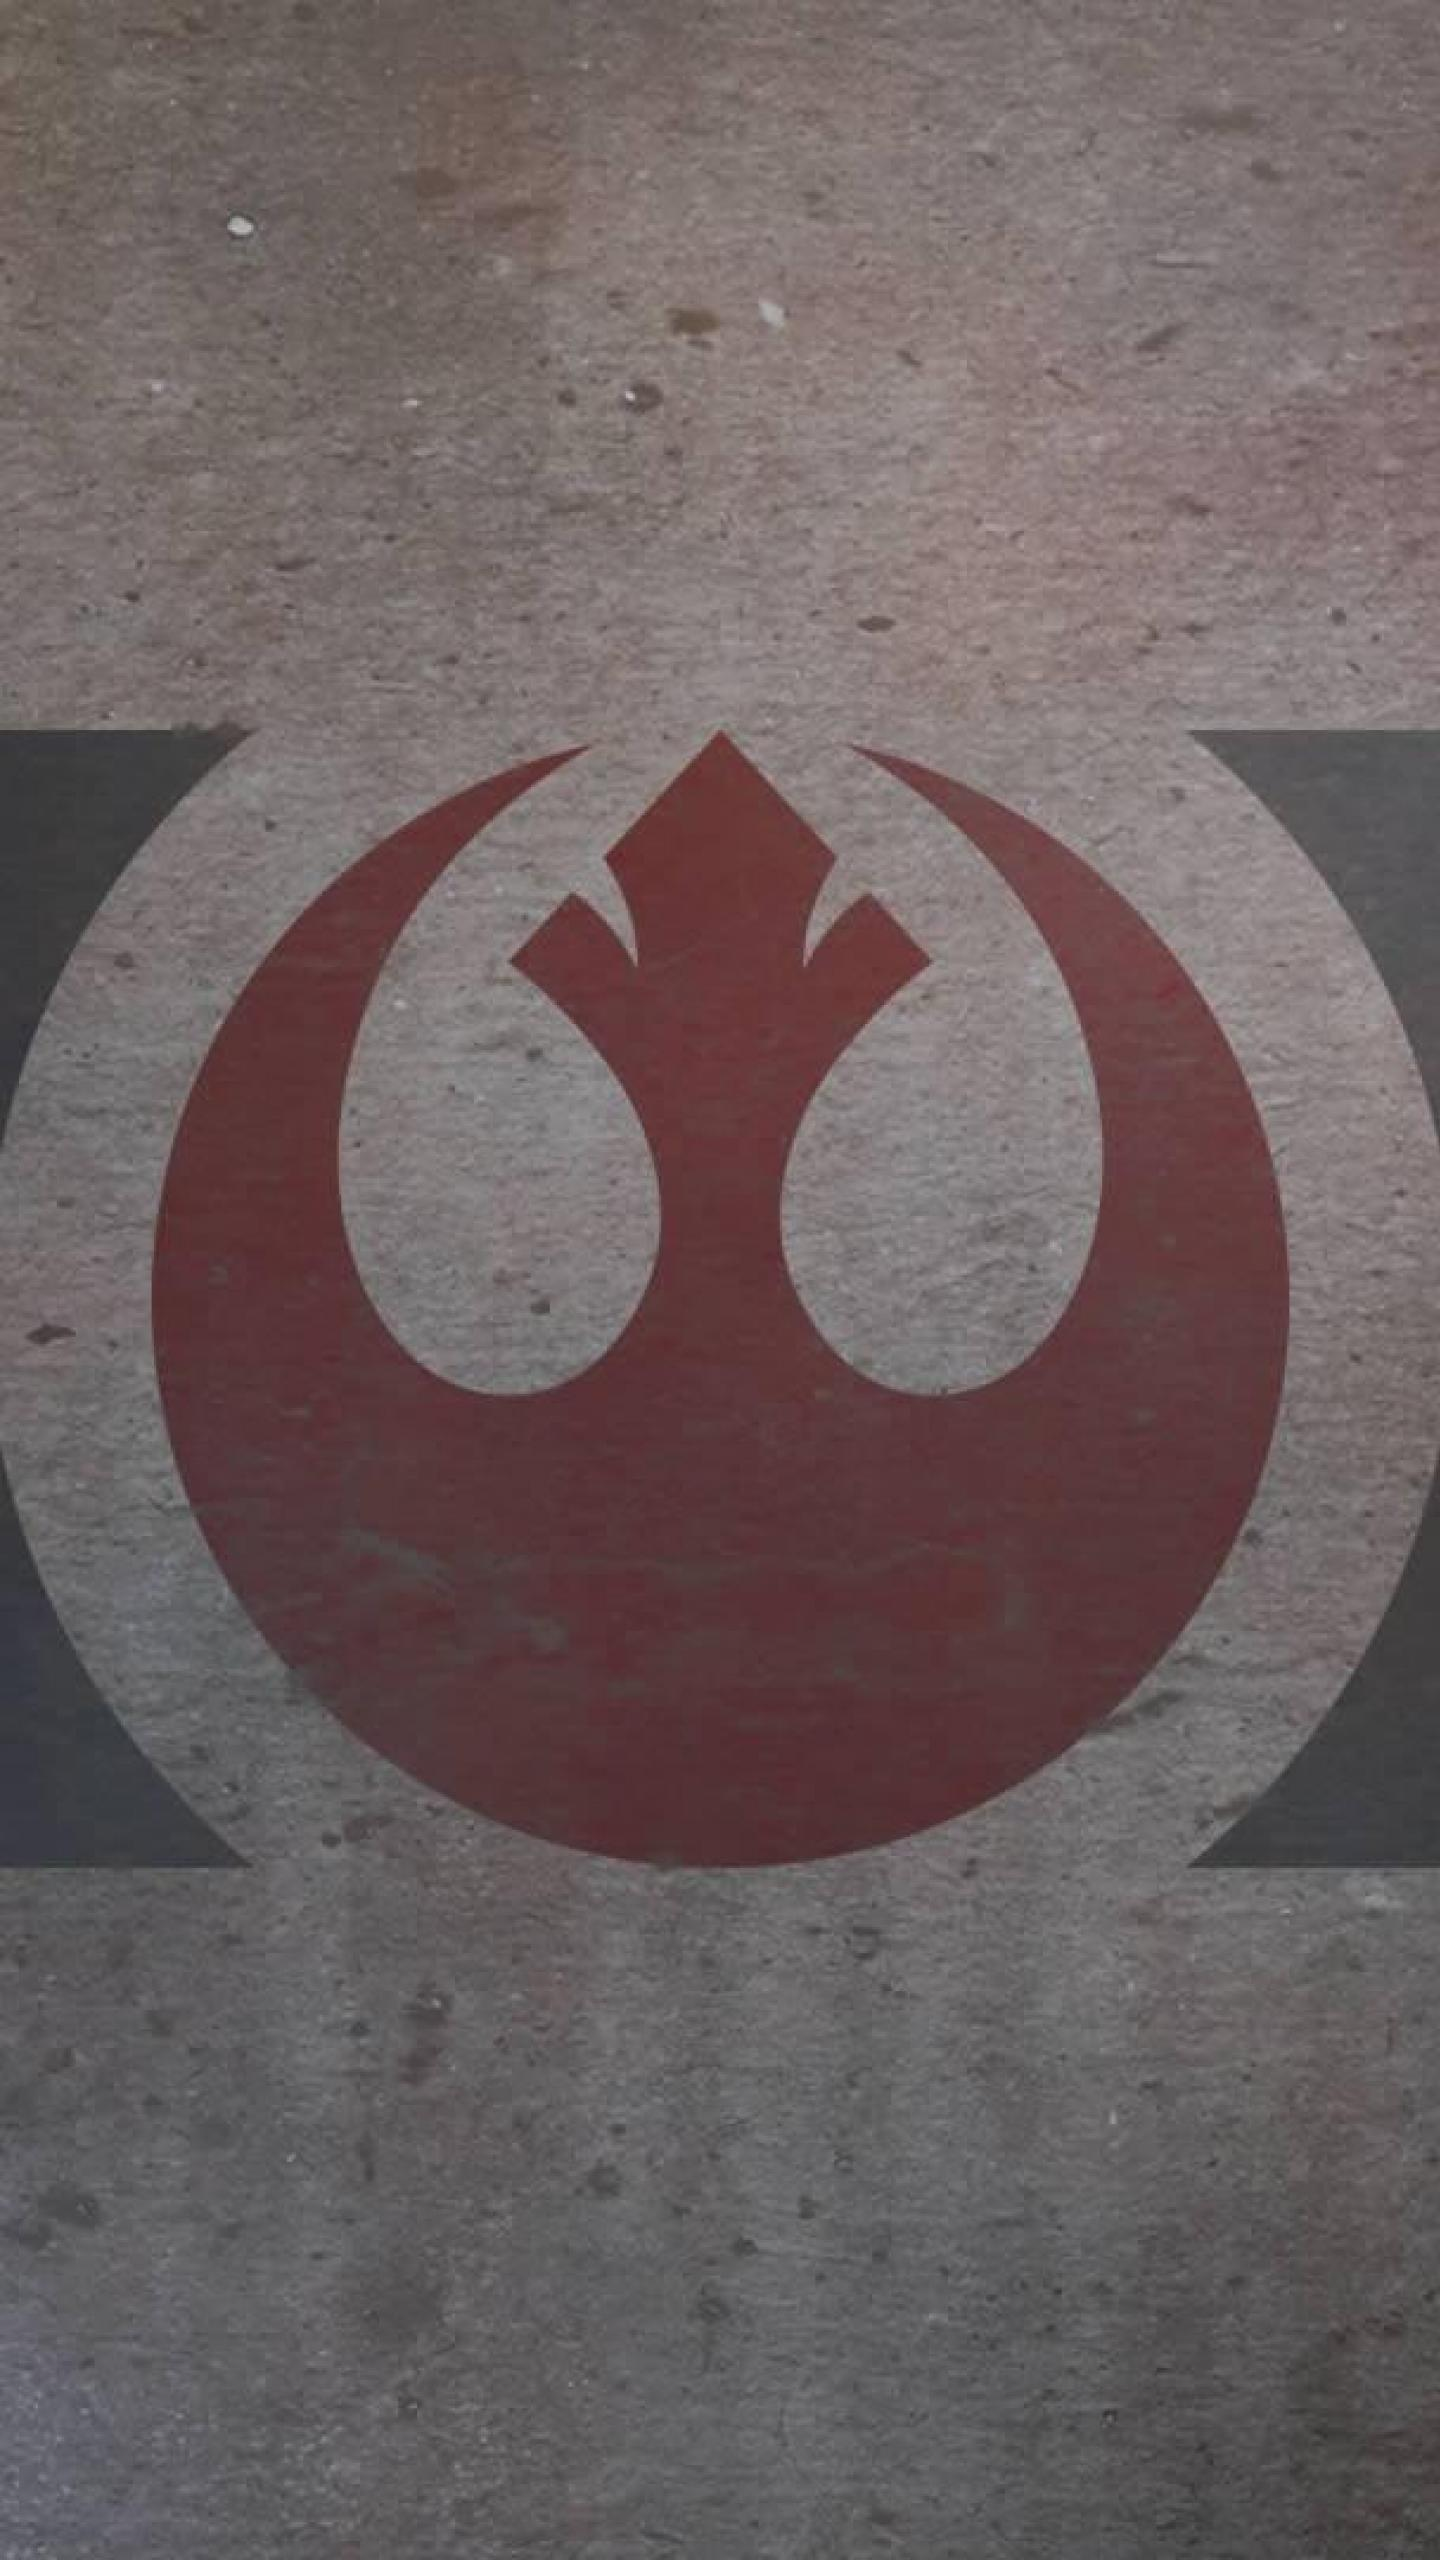 Star wars Rebel alliance HD Wallpapers, Desktop Backgrounds